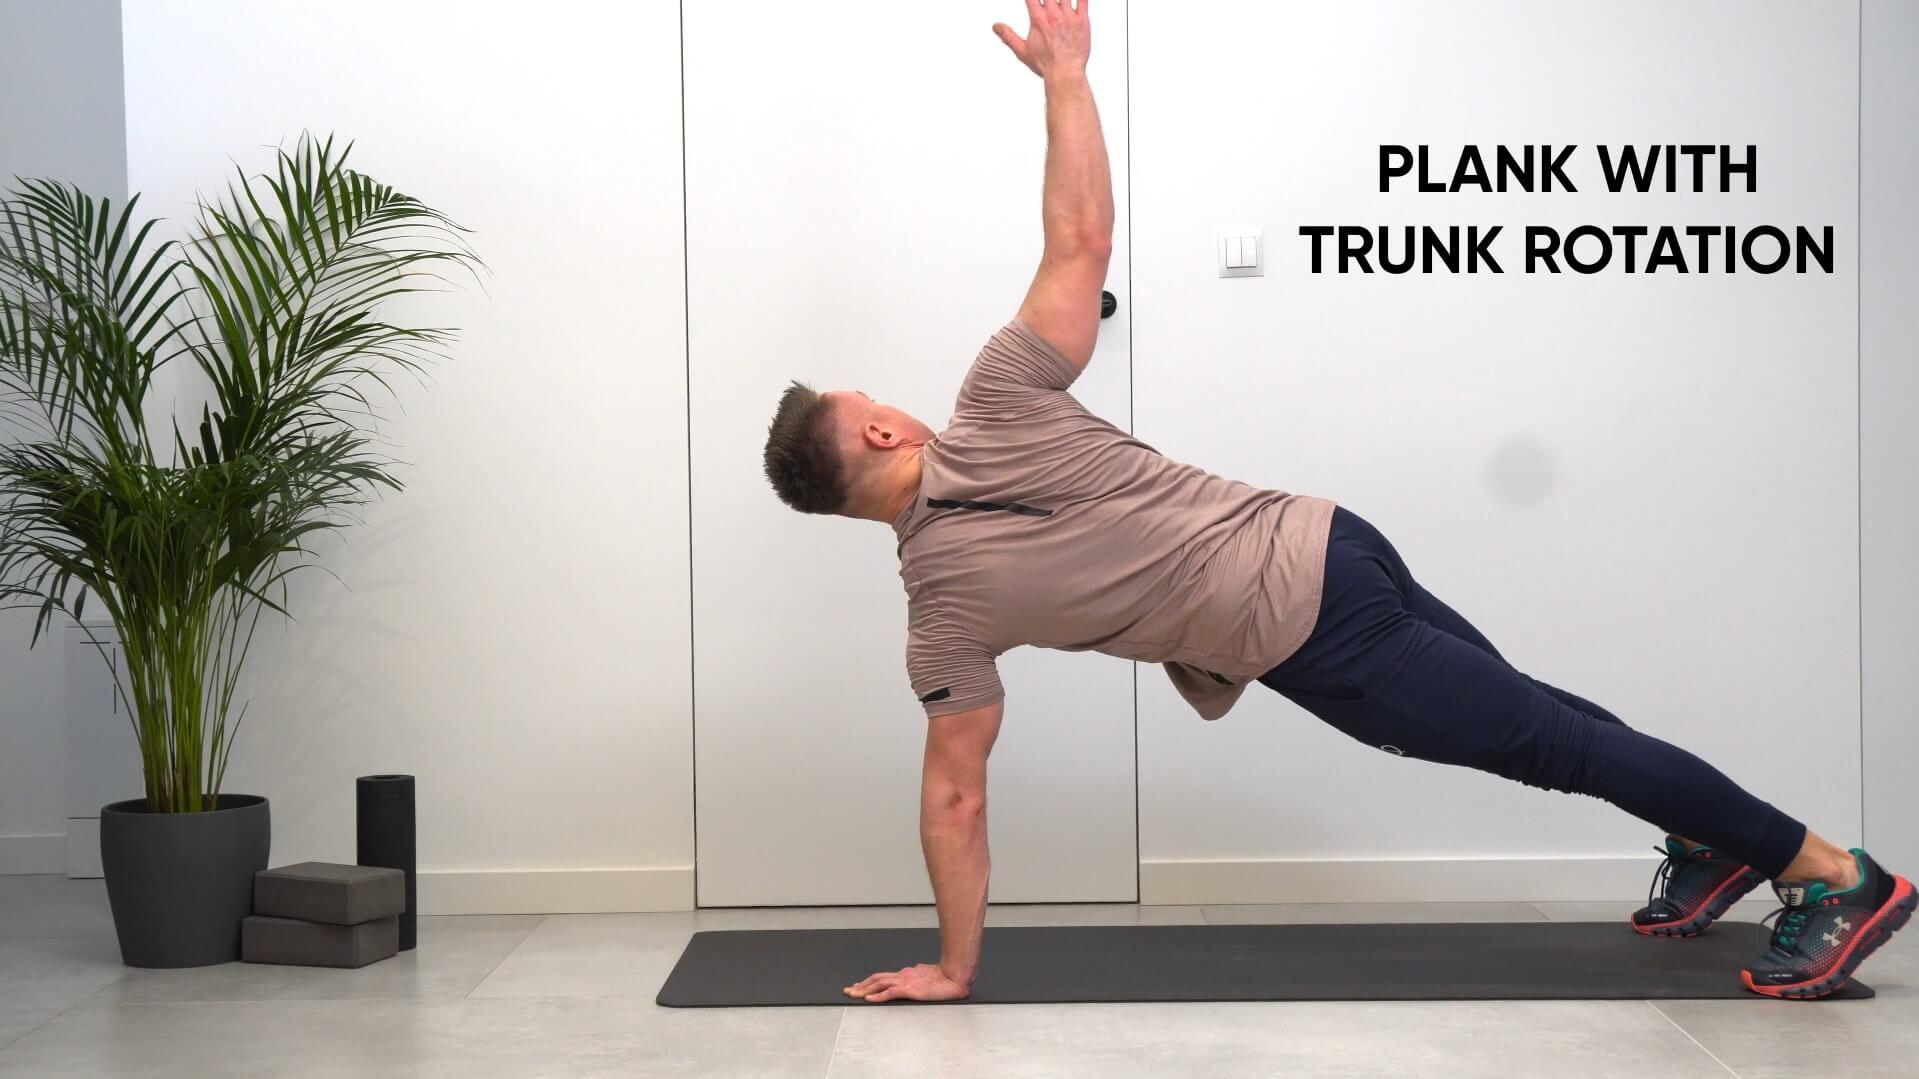 Plank with trunk rotation